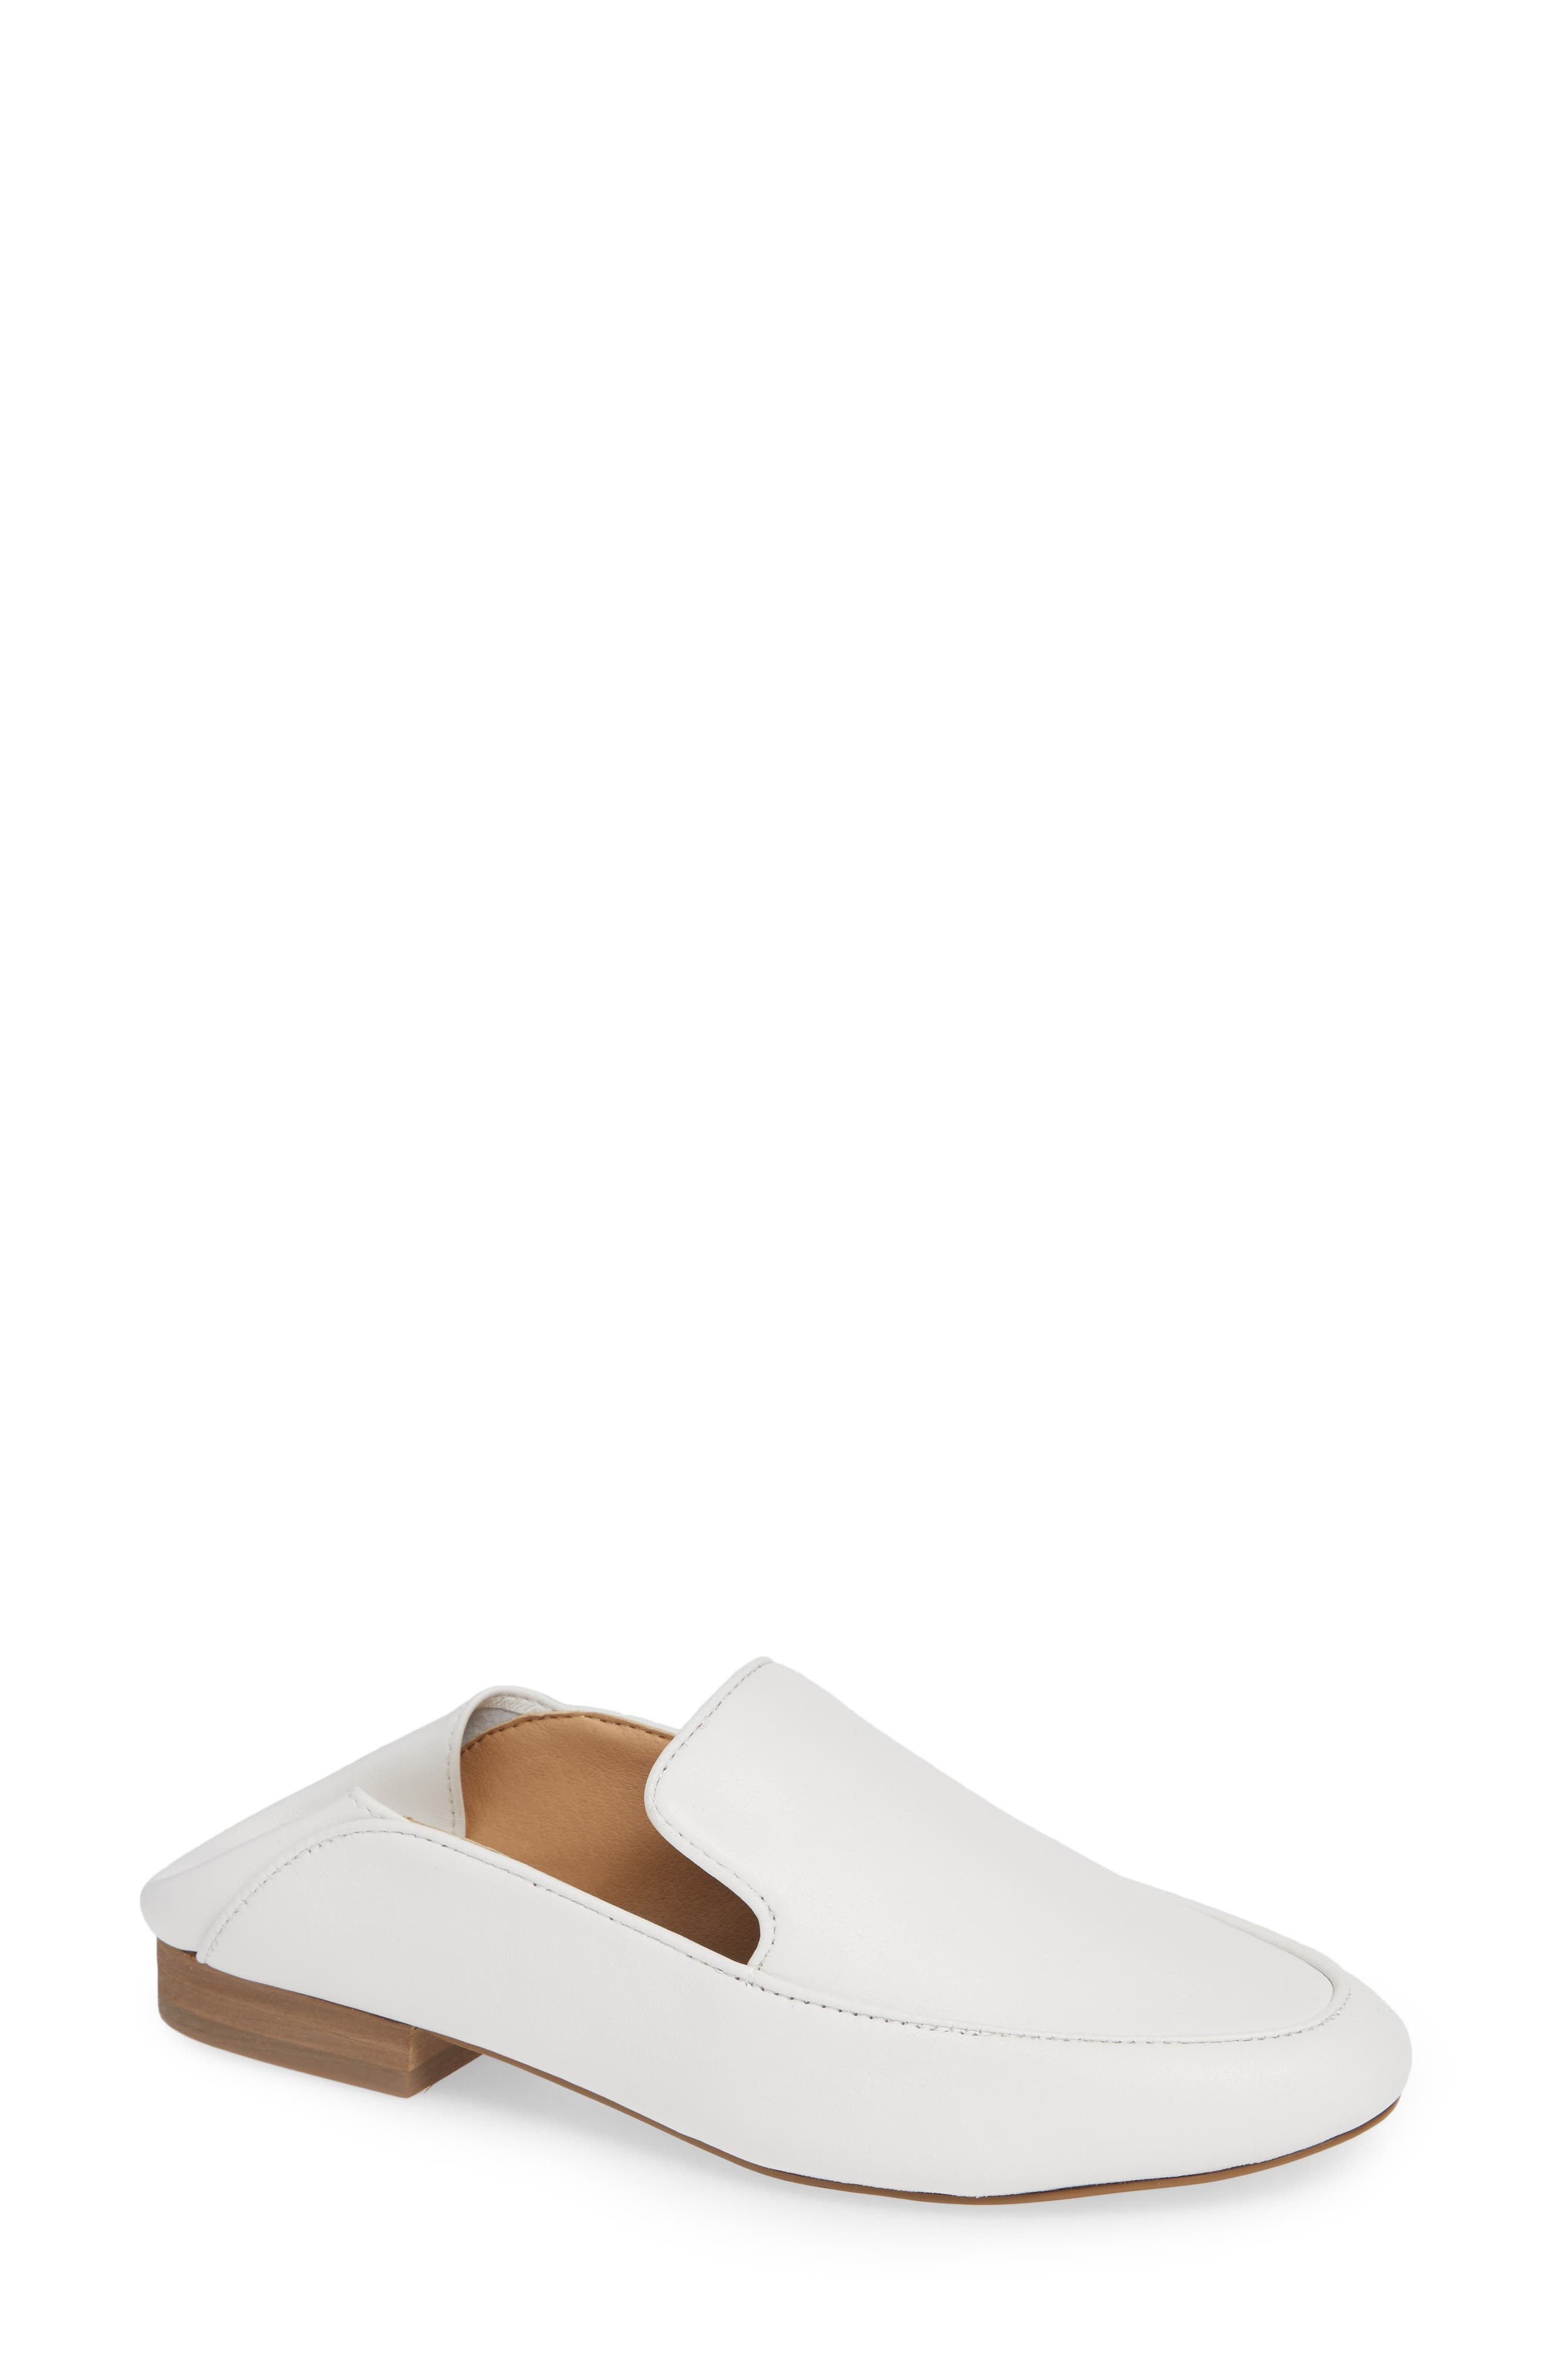 Riley Convertible Loafer, Main, color, WHITE LEATHER